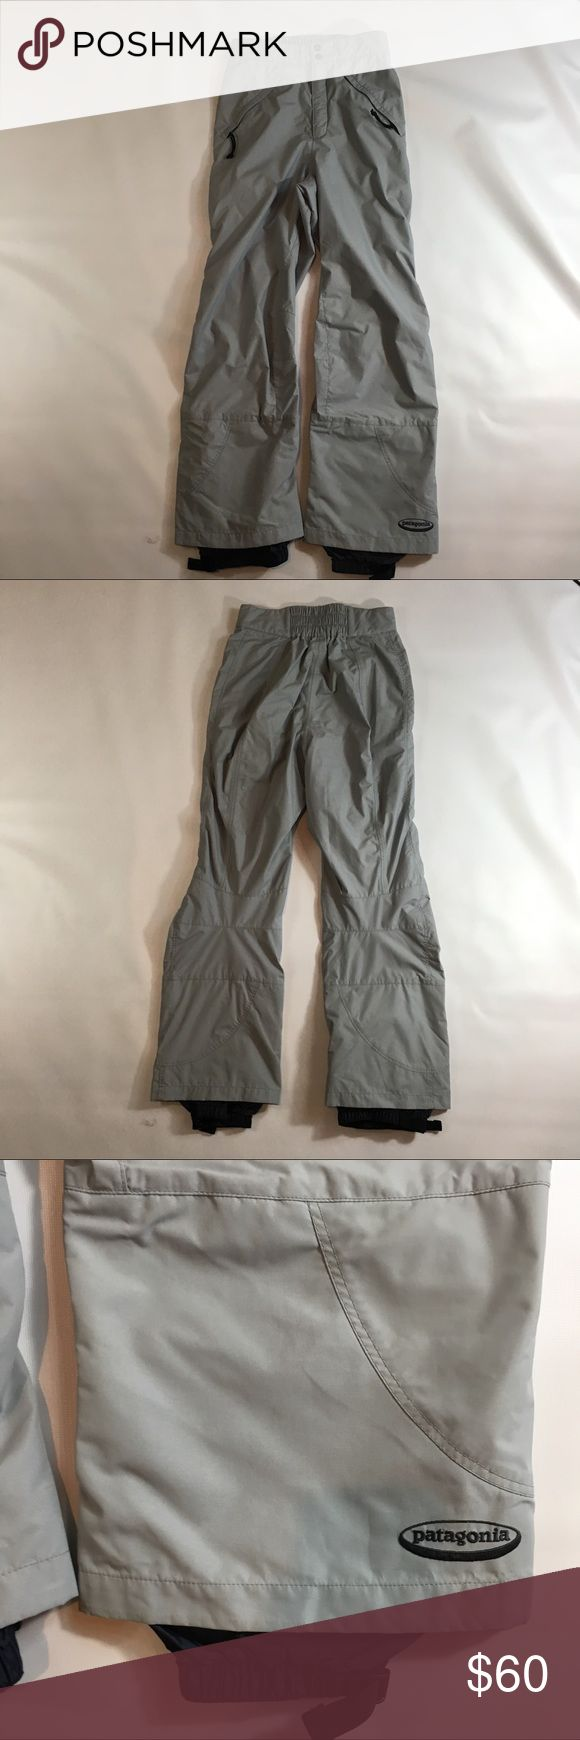 """Patagonia Women's 8 gray snow ski pants Nylon Patagonia womens 8 fully lined but uninsulated ski pants.  shell is 100% nylon and lining is 100% nylon. The mesh lining is 100% polyester. bottom cuffs have inside adjustable snow cuffs.  In excellent condition, these are an older model but have hardly any wear, one super small knock to the fabric by the cuff (see closeup) otherwise you would think they were new  29.5"""" inseam (snow cuff extends a little more) 13"""" front rise (higher rise) 14""""…"""